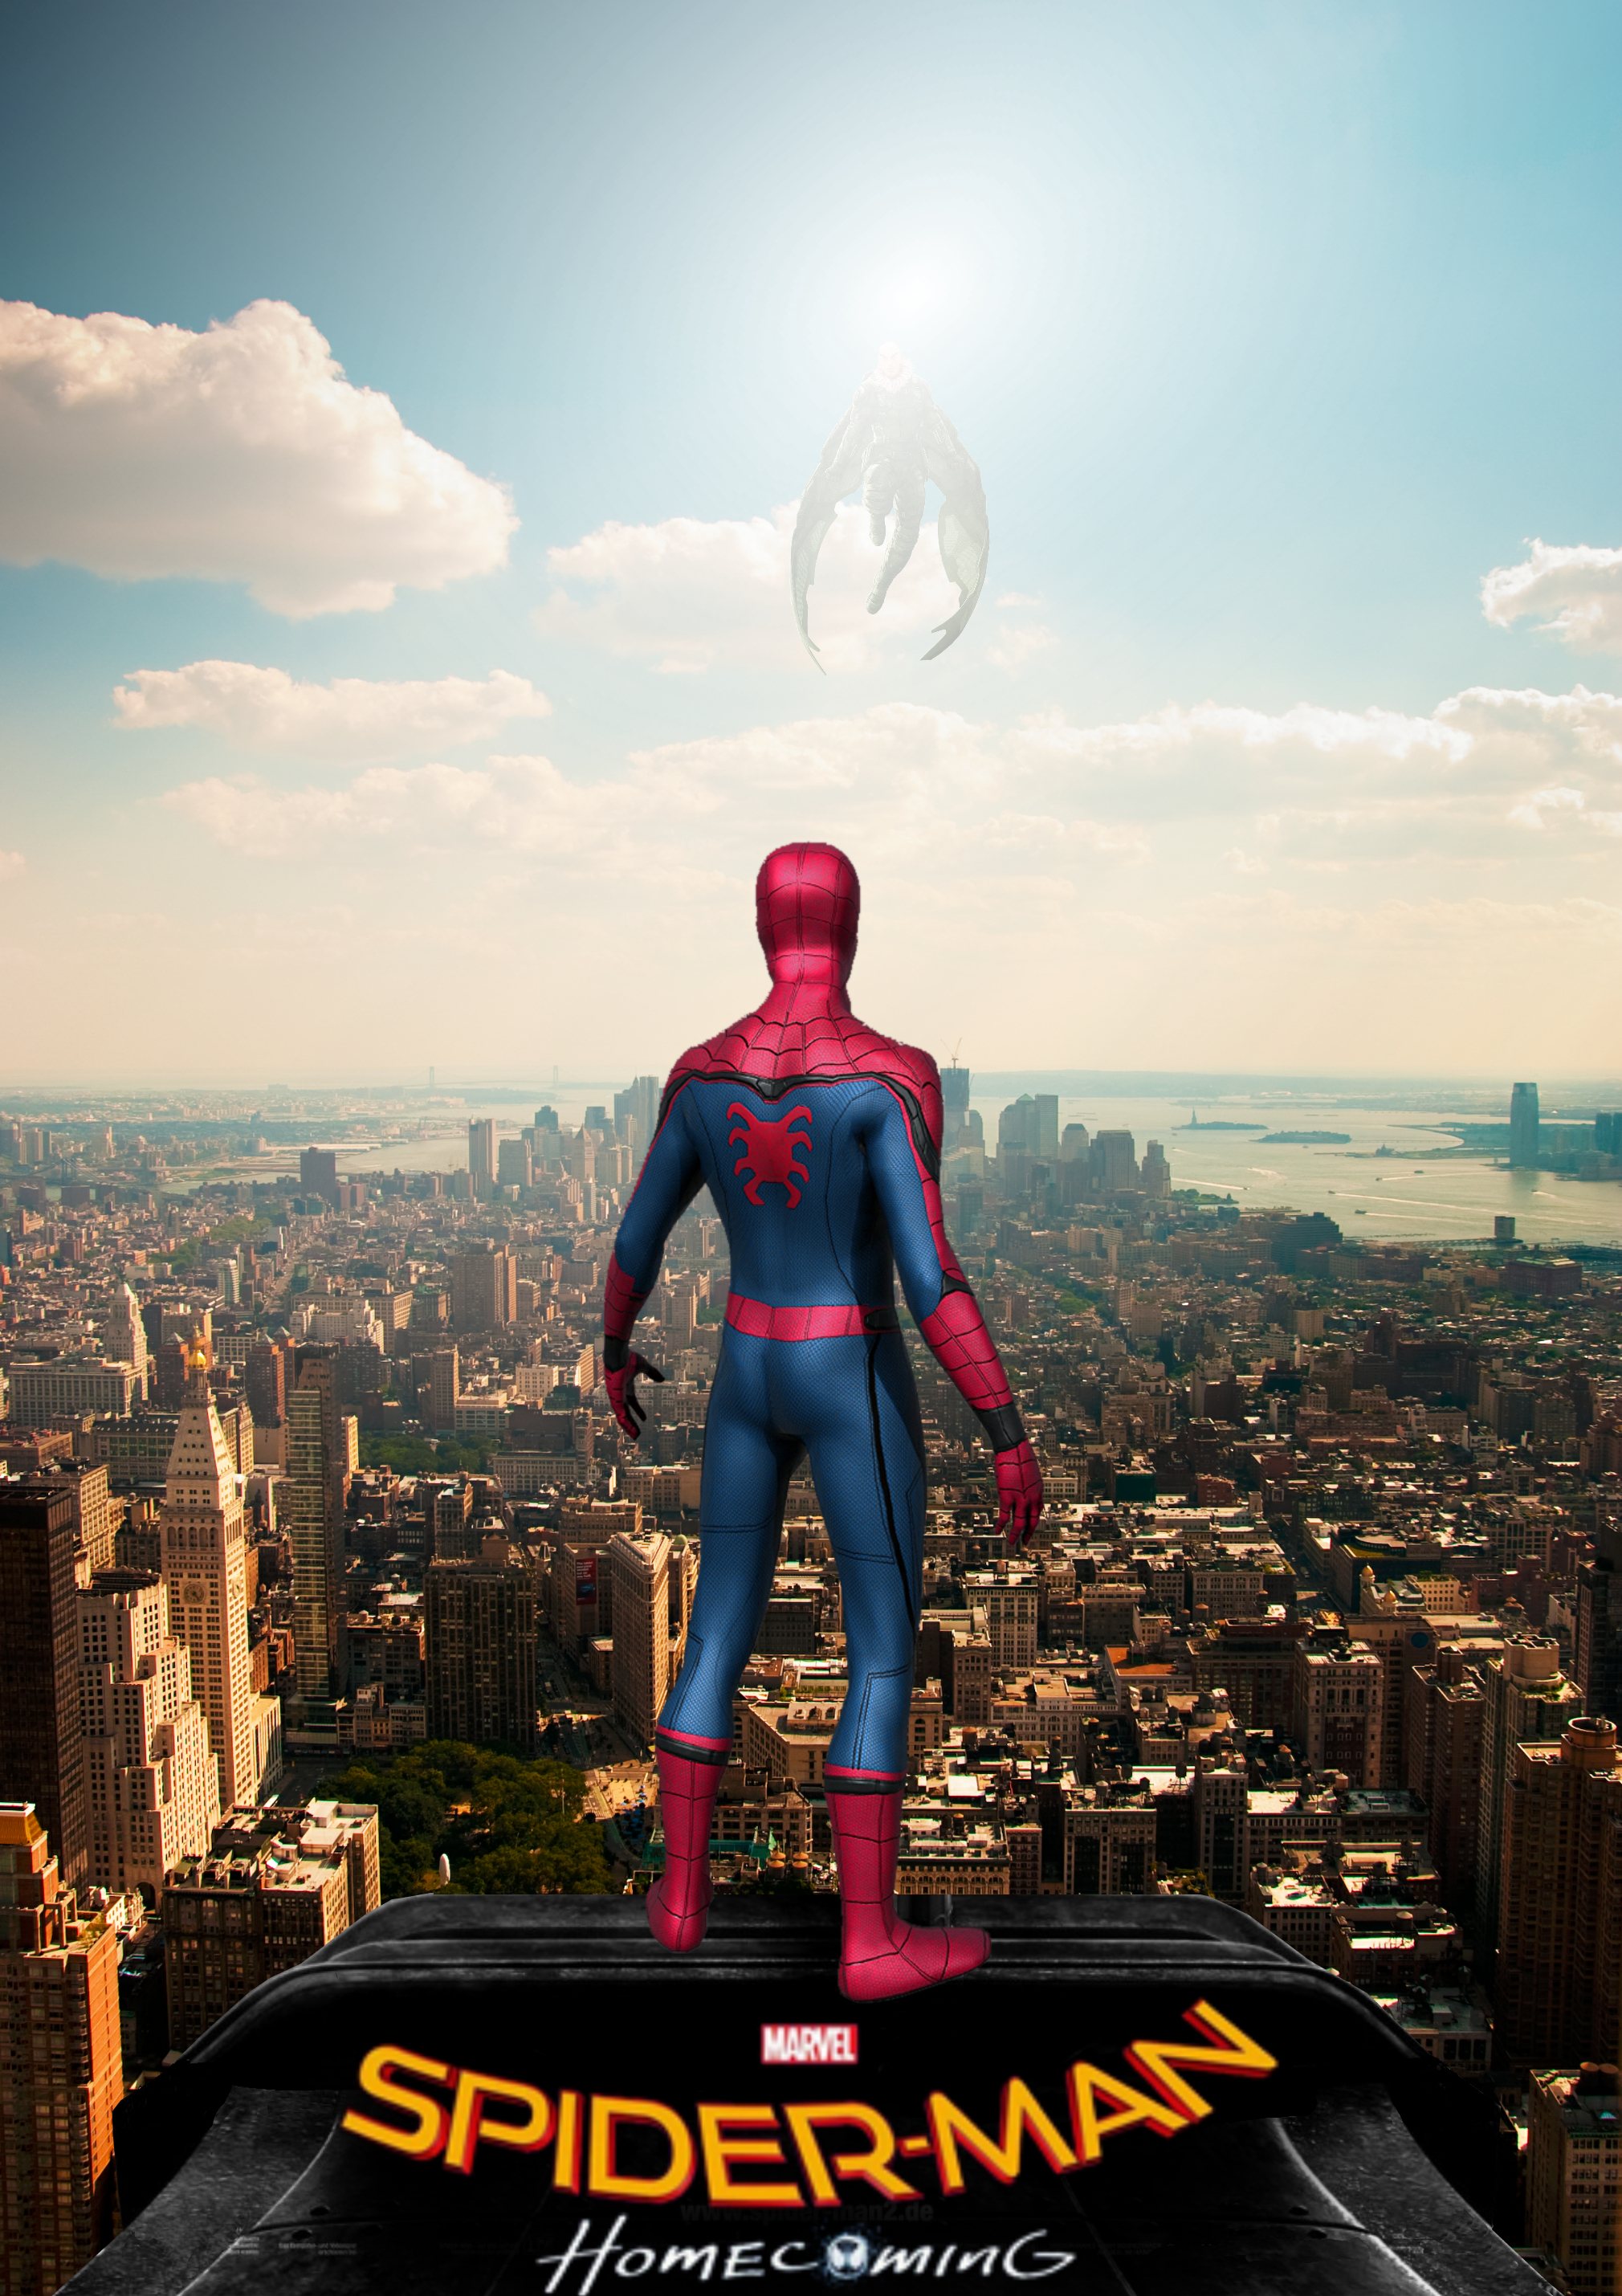 The poster for Spider-Man: Homecoming. Spider-man stands on the ledge of a tall building overlooking New York City, with Vulture floating among the clouds, nearly blocked out by the sun.